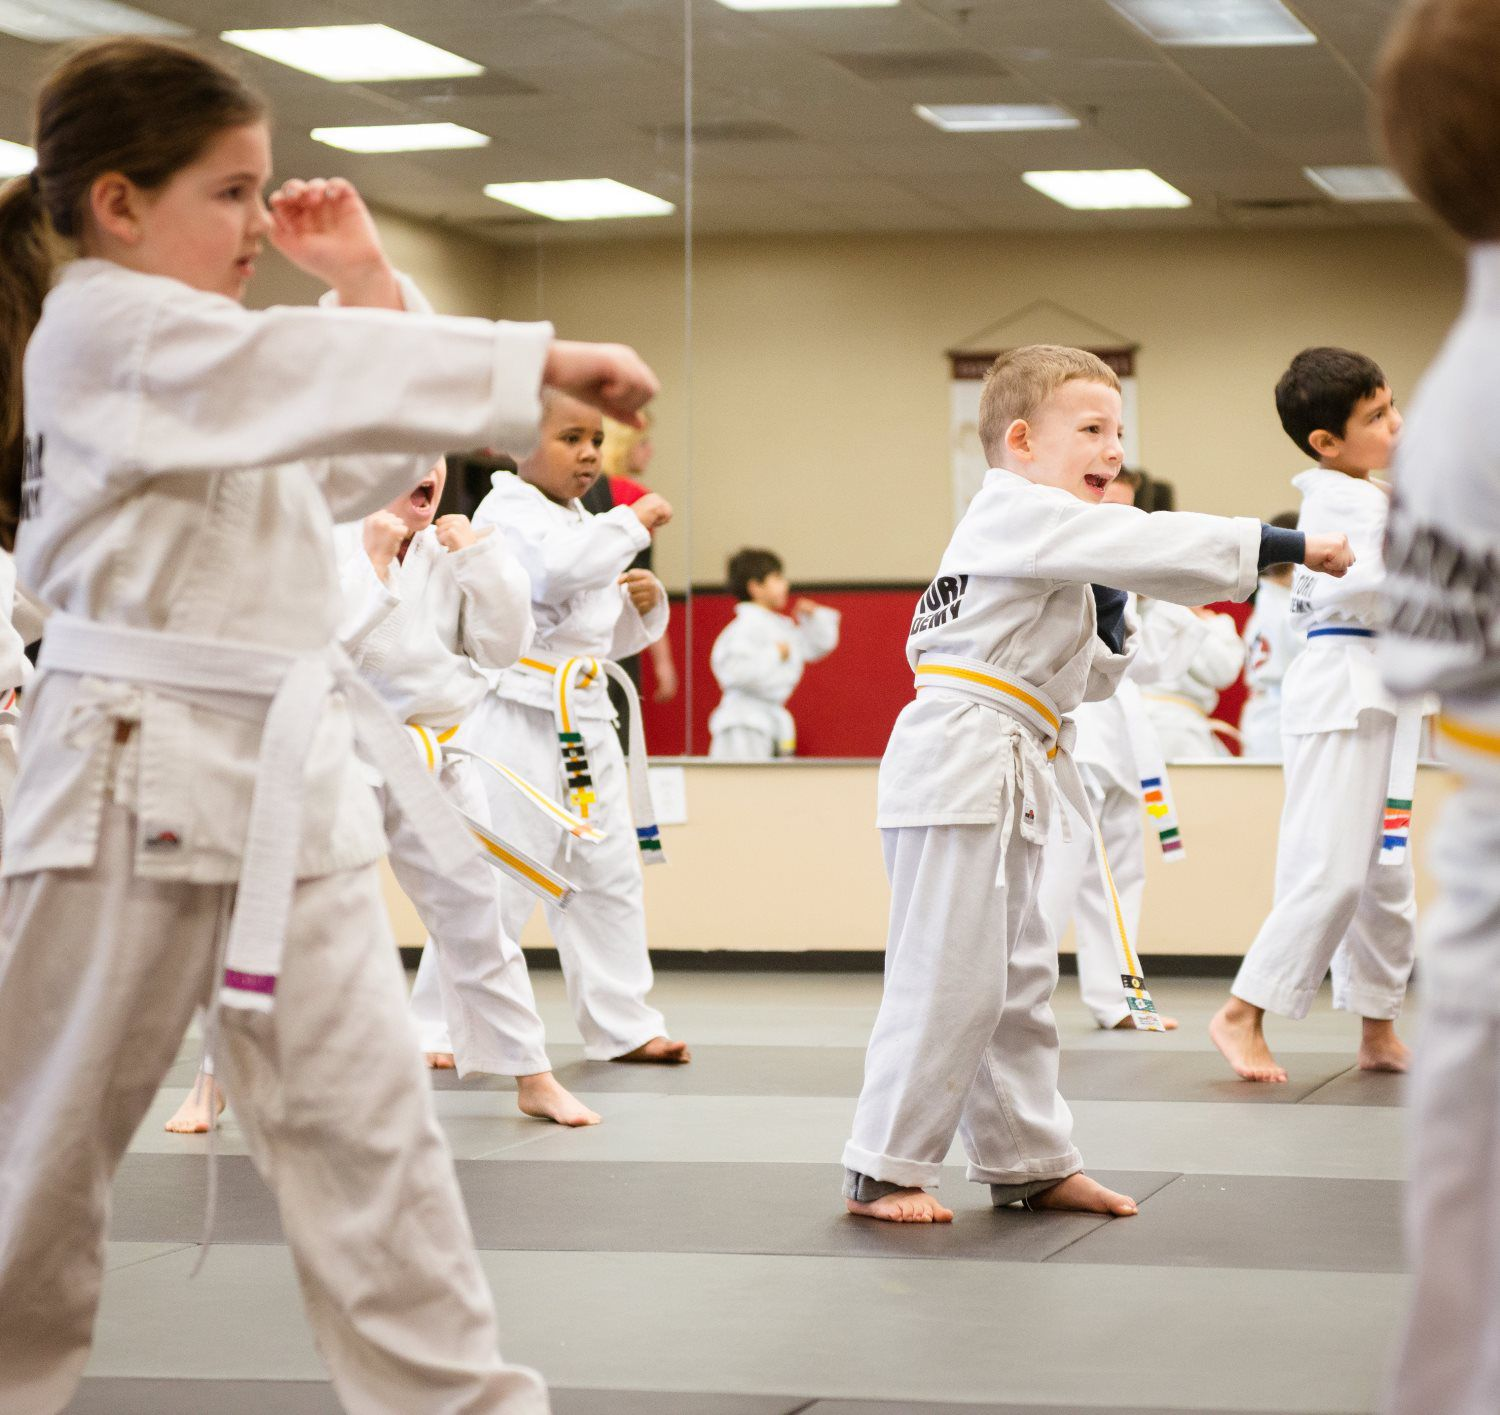 Martial Arts Academy in New Jersey - Satori Academy of